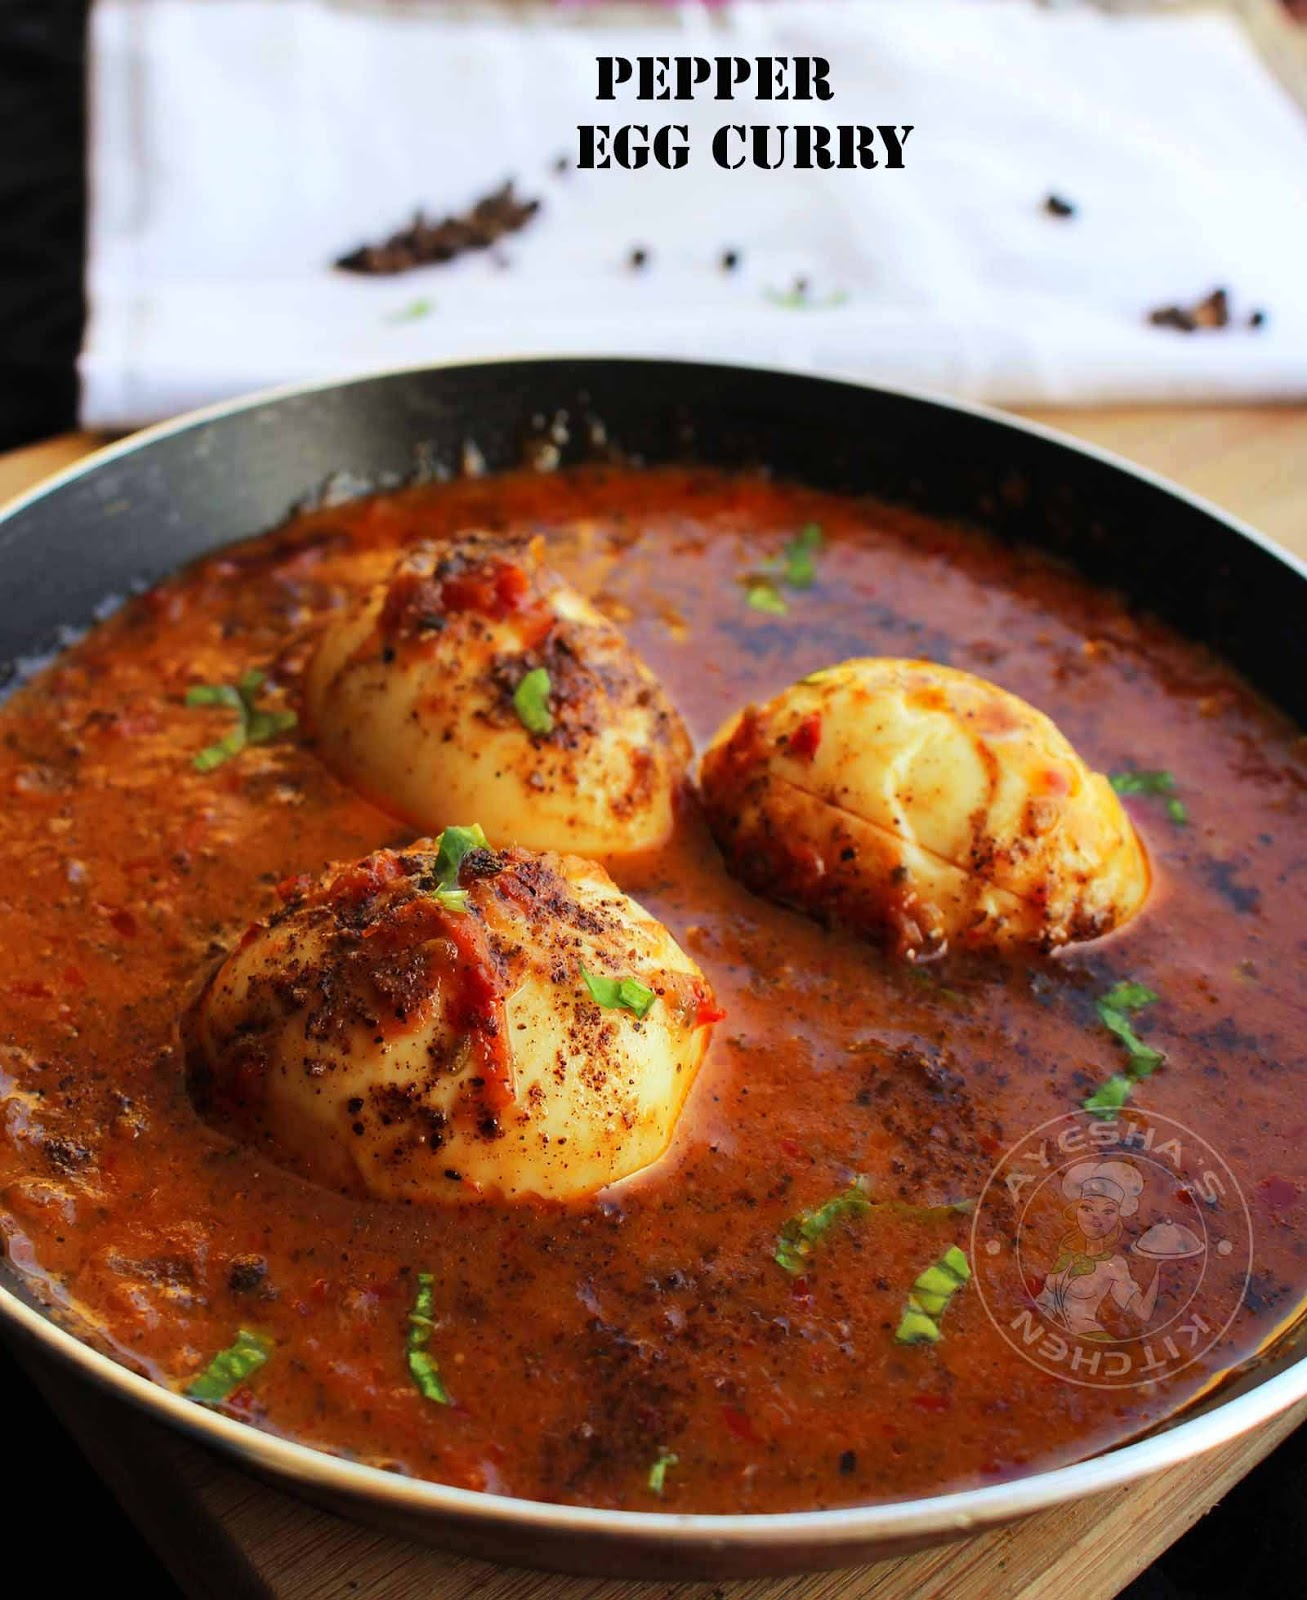 Curry Masala Egg Curry Recipe Indian Egg Recipes For Dinner Pepper And Egg Recipe Egg Recipes For Breakfast Recipes For Eggs Quick Easy Egg Recipes